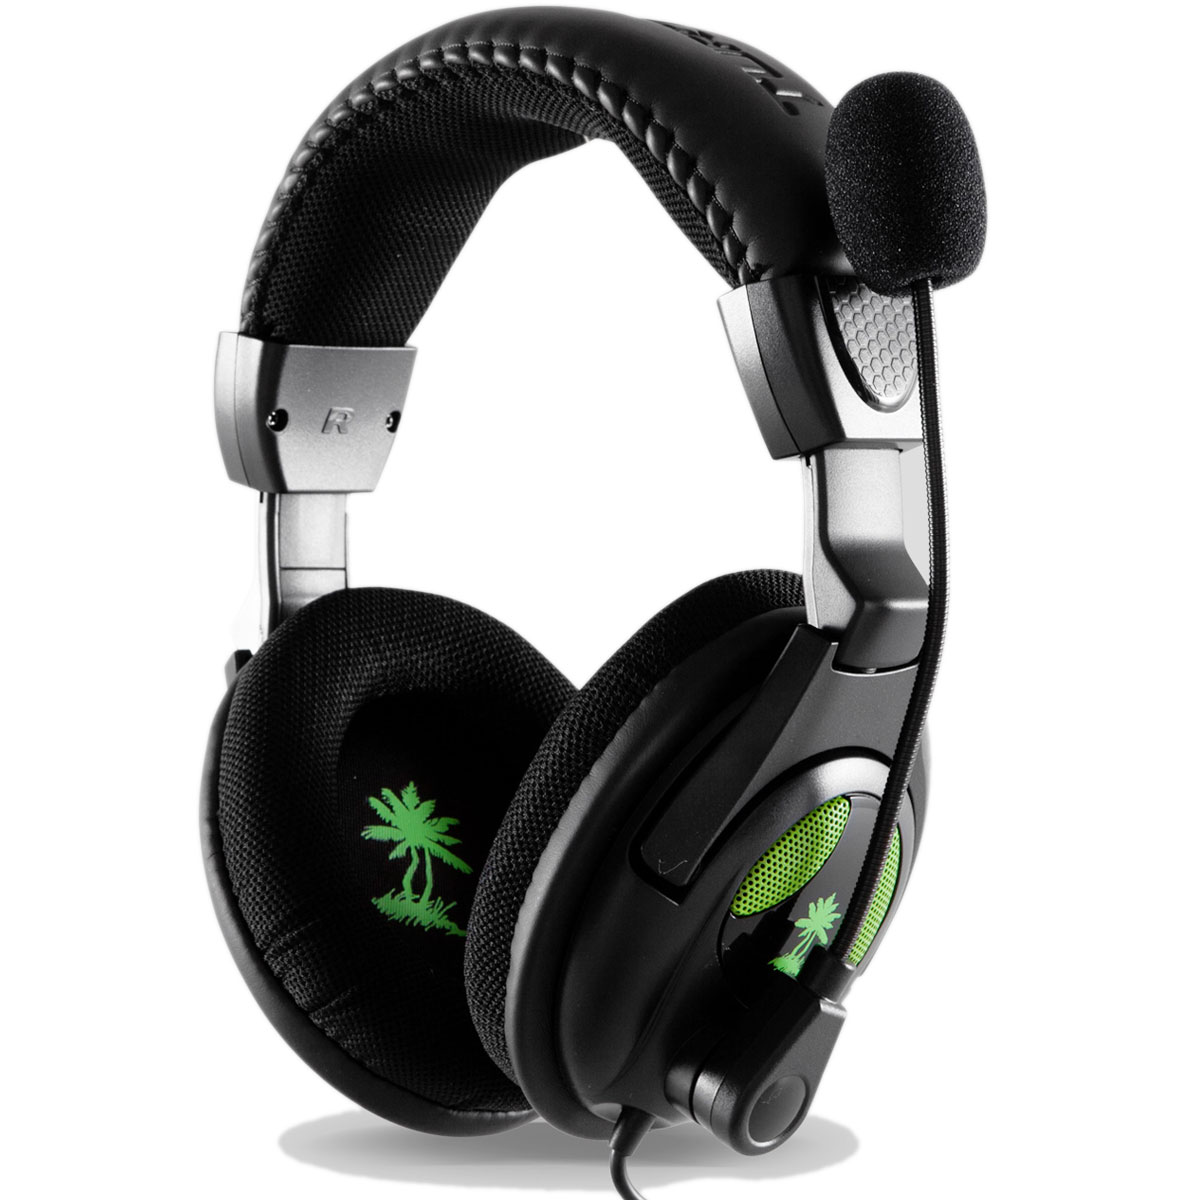 turtle beach ear force x12 micro casque turtle beach sur. Black Bedroom Furniture Sets. Home Design Ideas